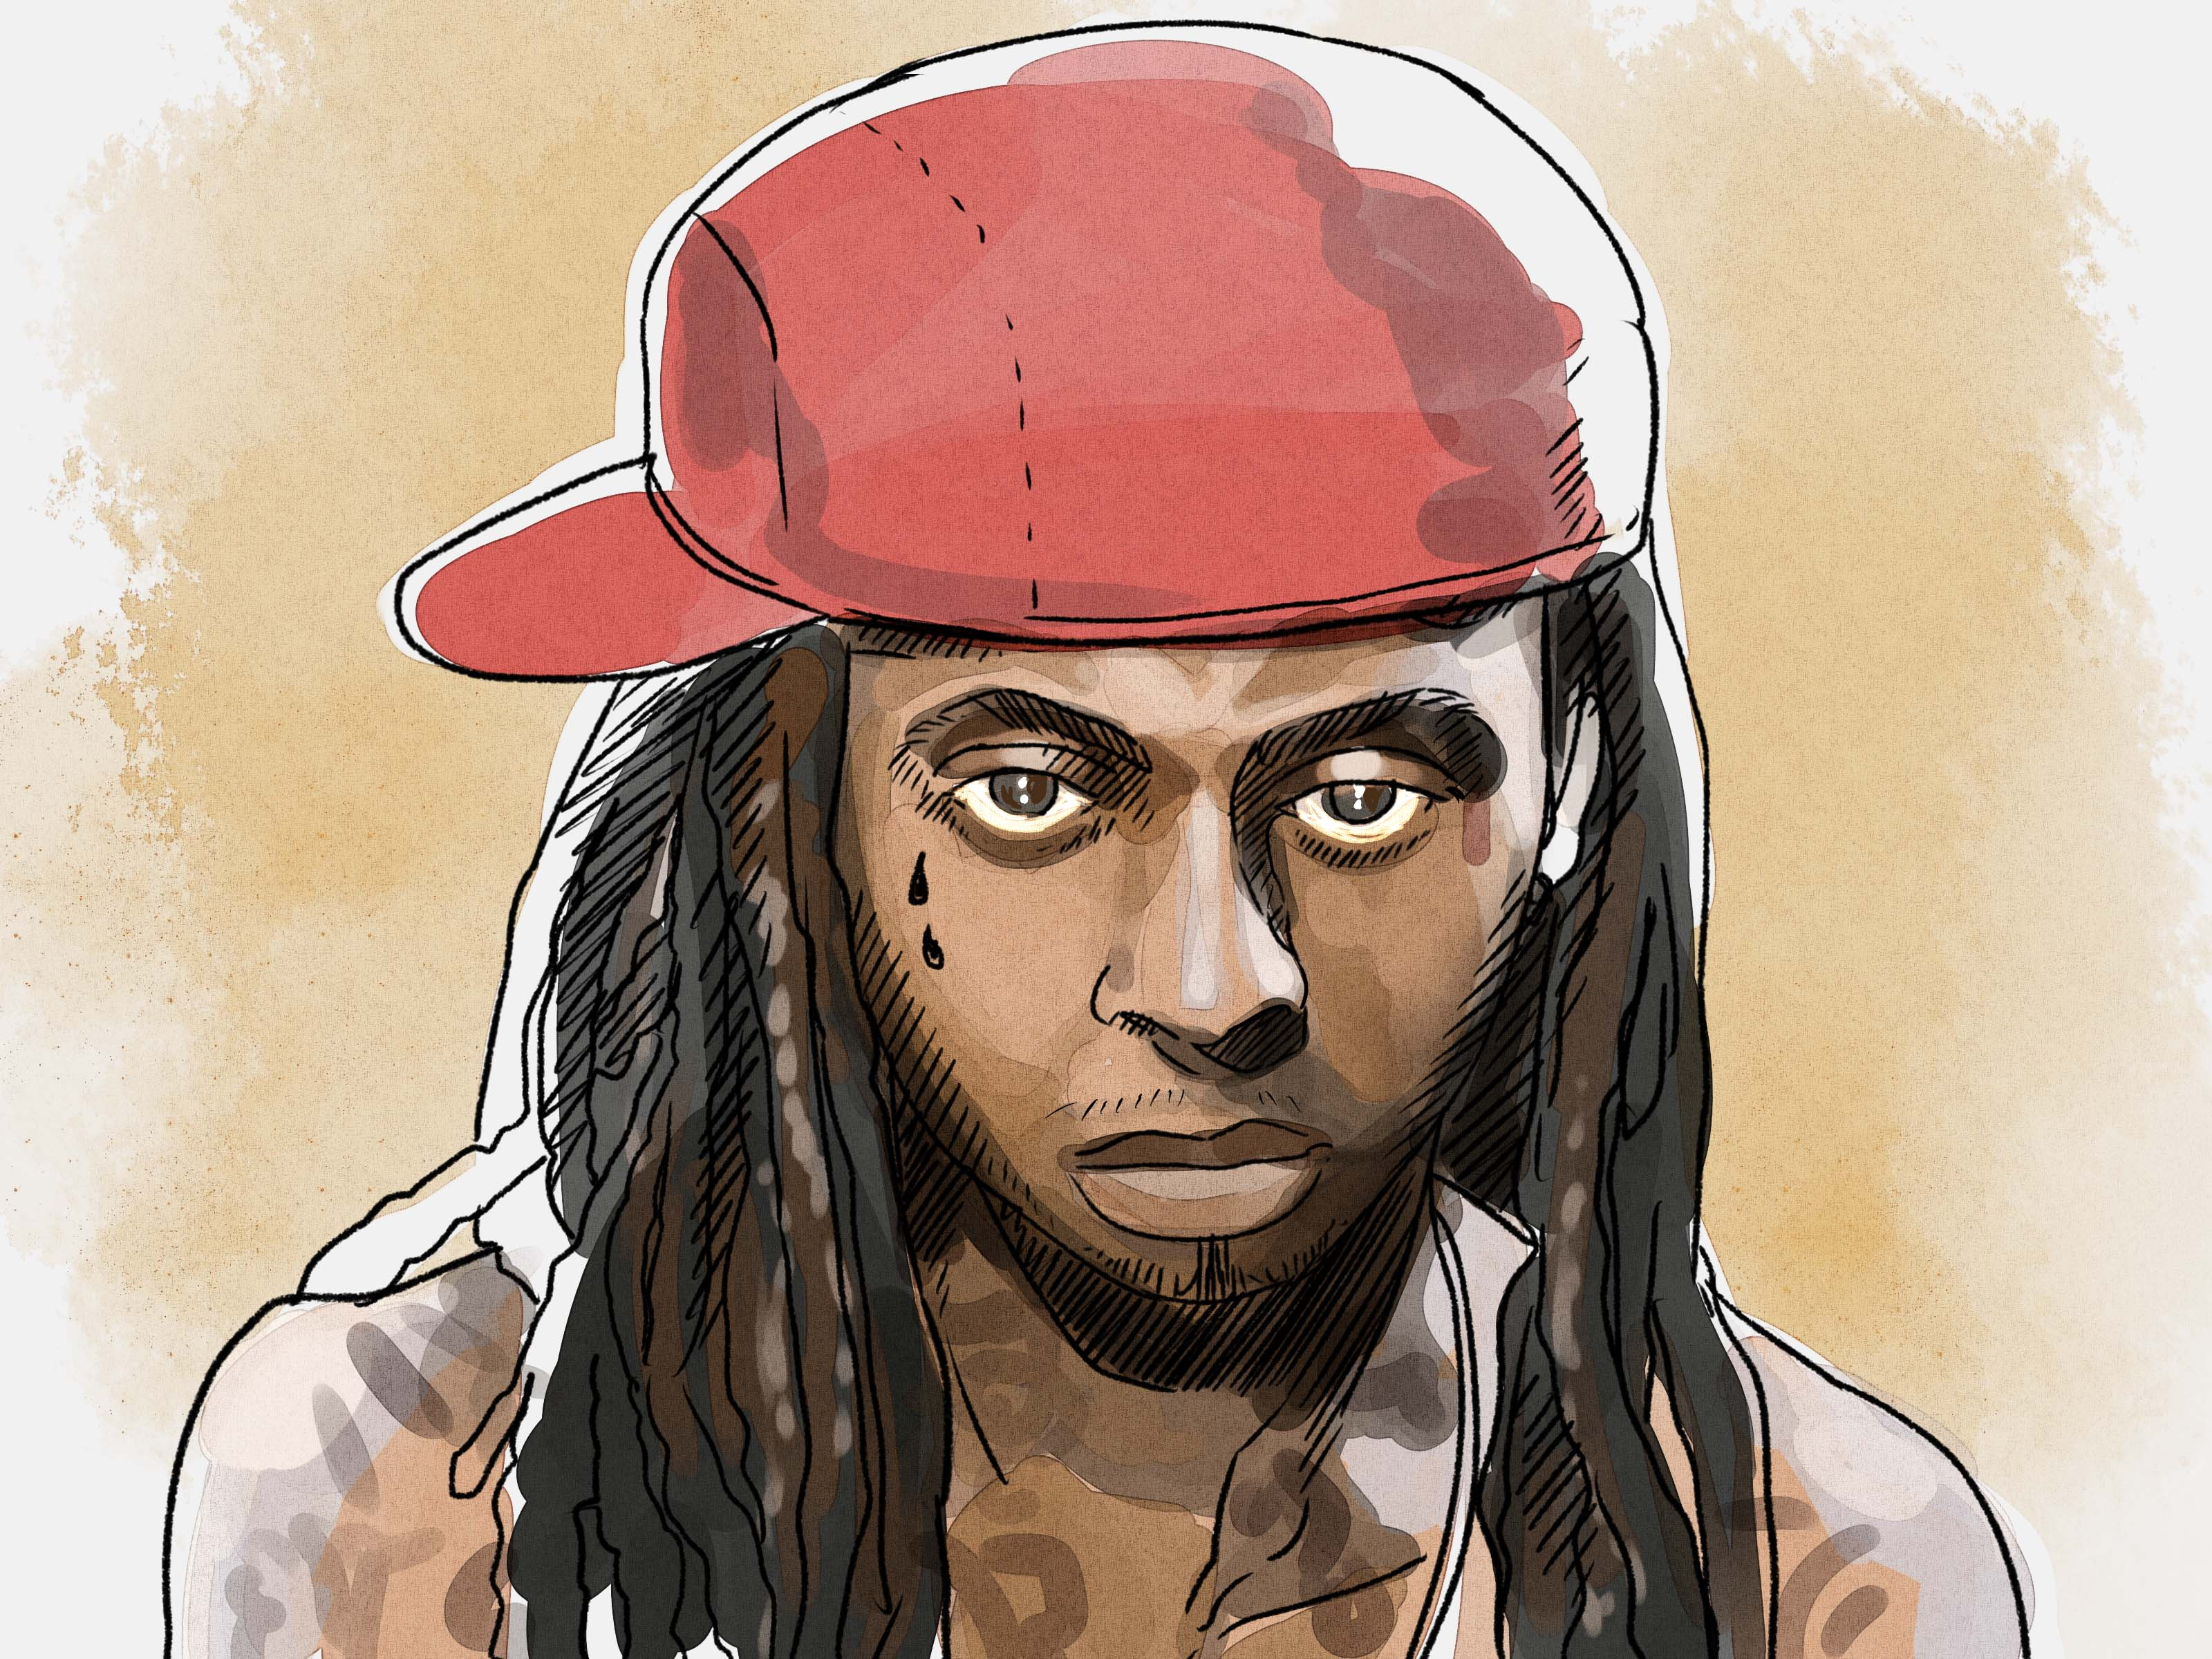 Drawn pice lil wayne To Pictures) Steps 13 How